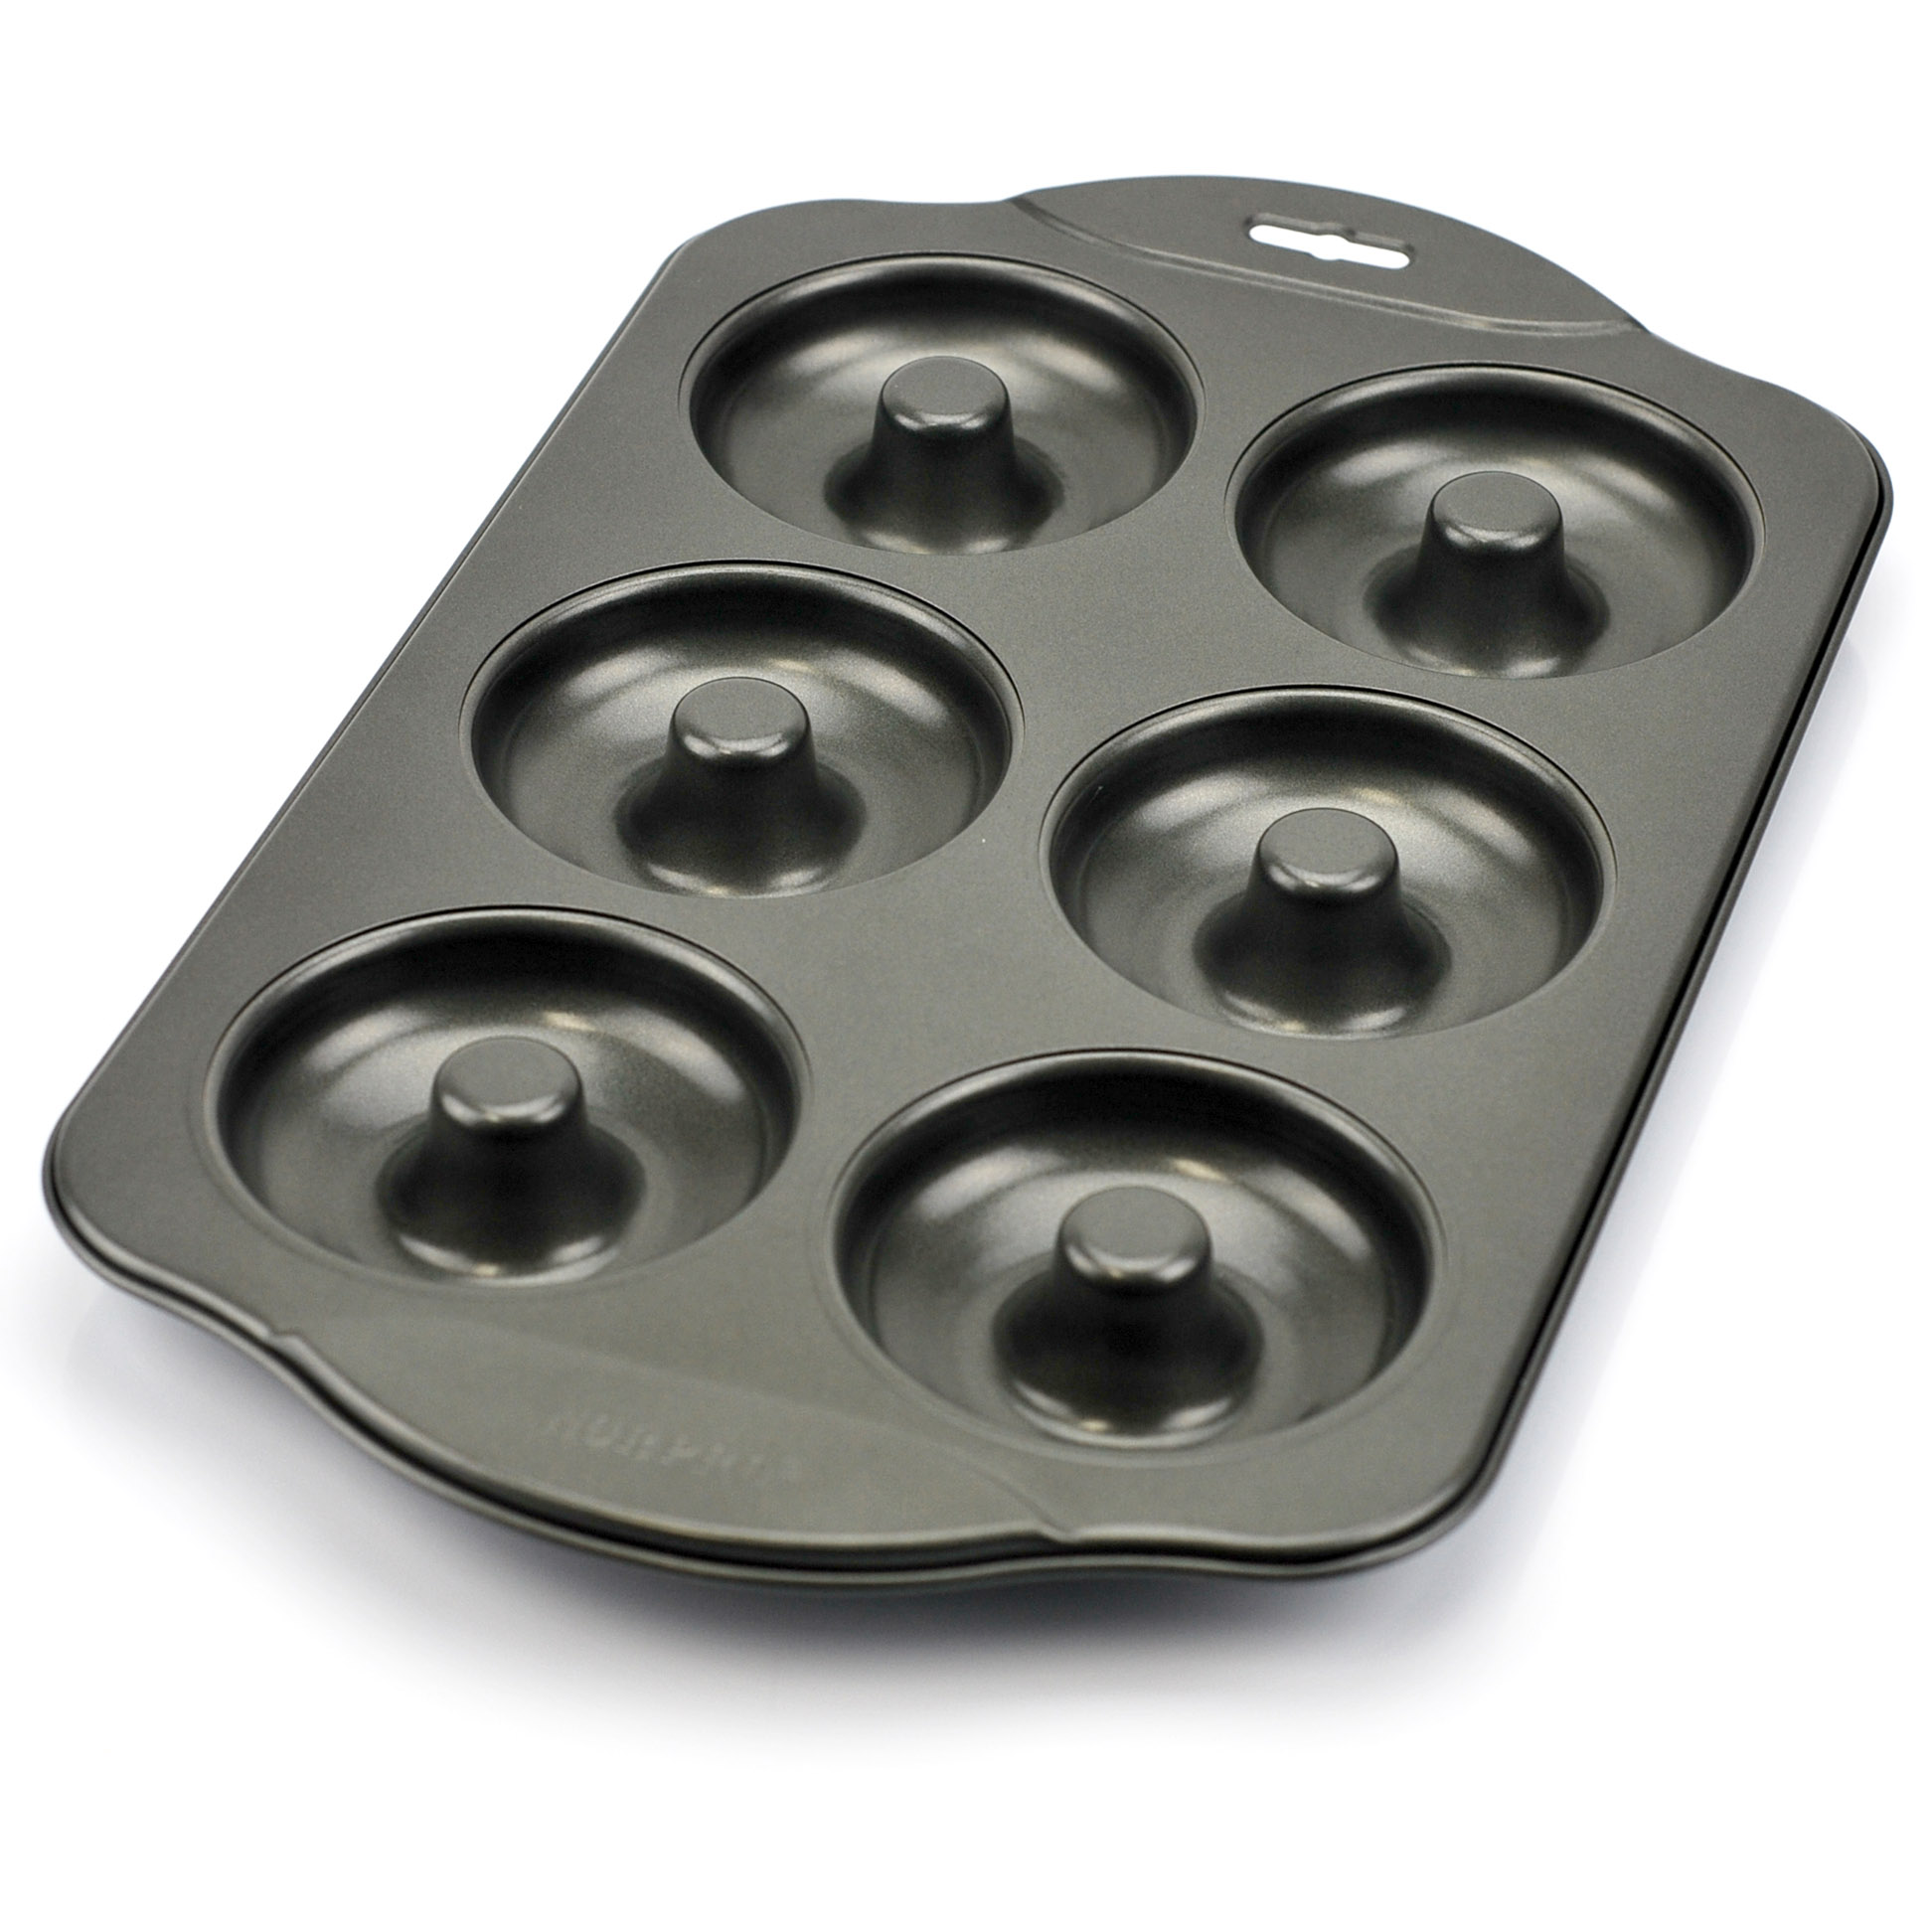 Donut pan, nonstick donut hole pan stainless, 6 count - silver gray (pack of 2)